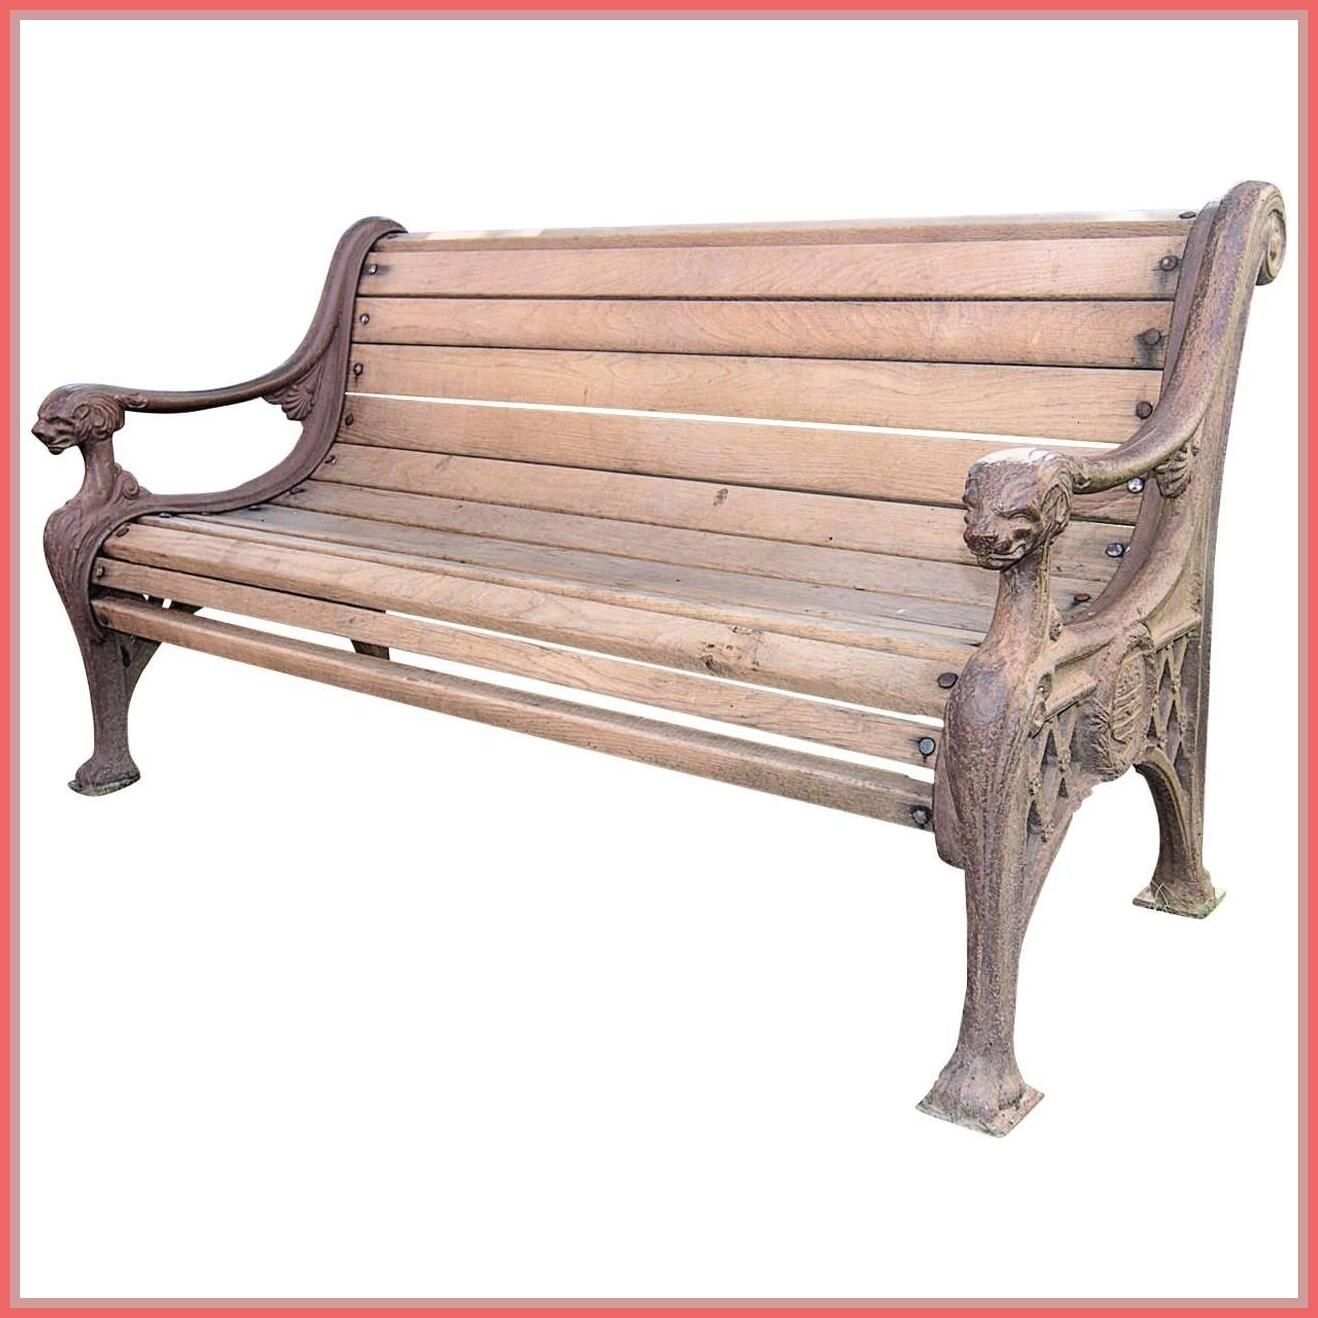 64 Reference Of Vintage Garden Bench Ends 1000 In 2020 Iron Bench Cast Iron Garden Bench Cast Iron Bench